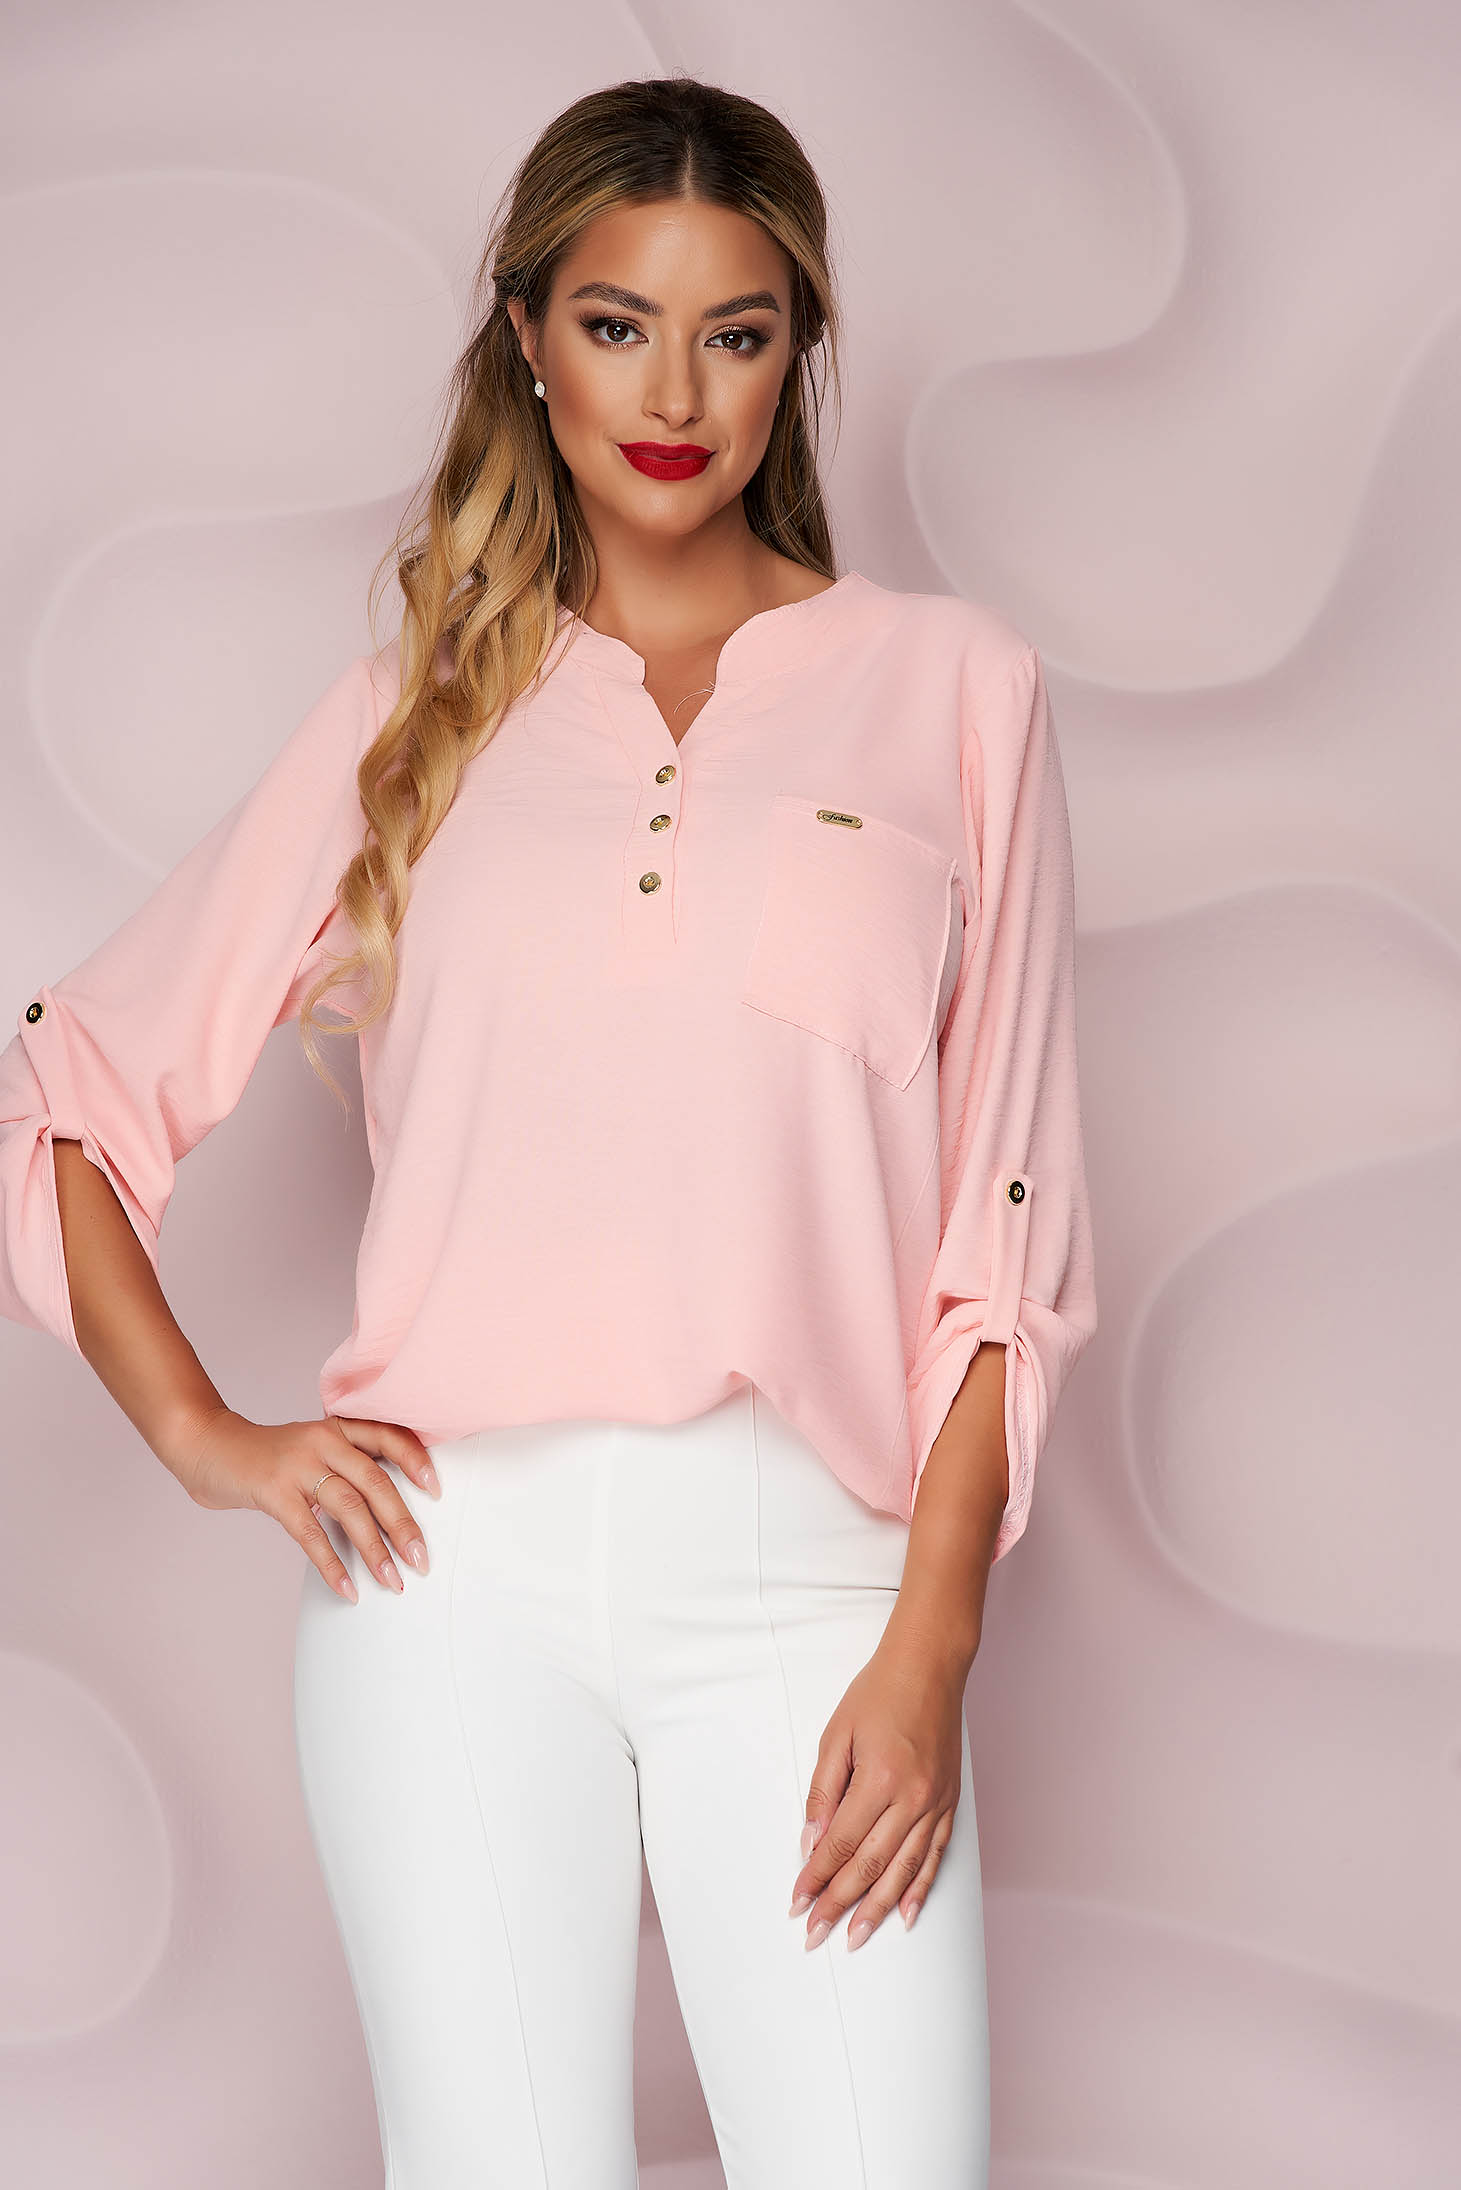 Pink women`s blouse loose fit wrinkled material a front pocket